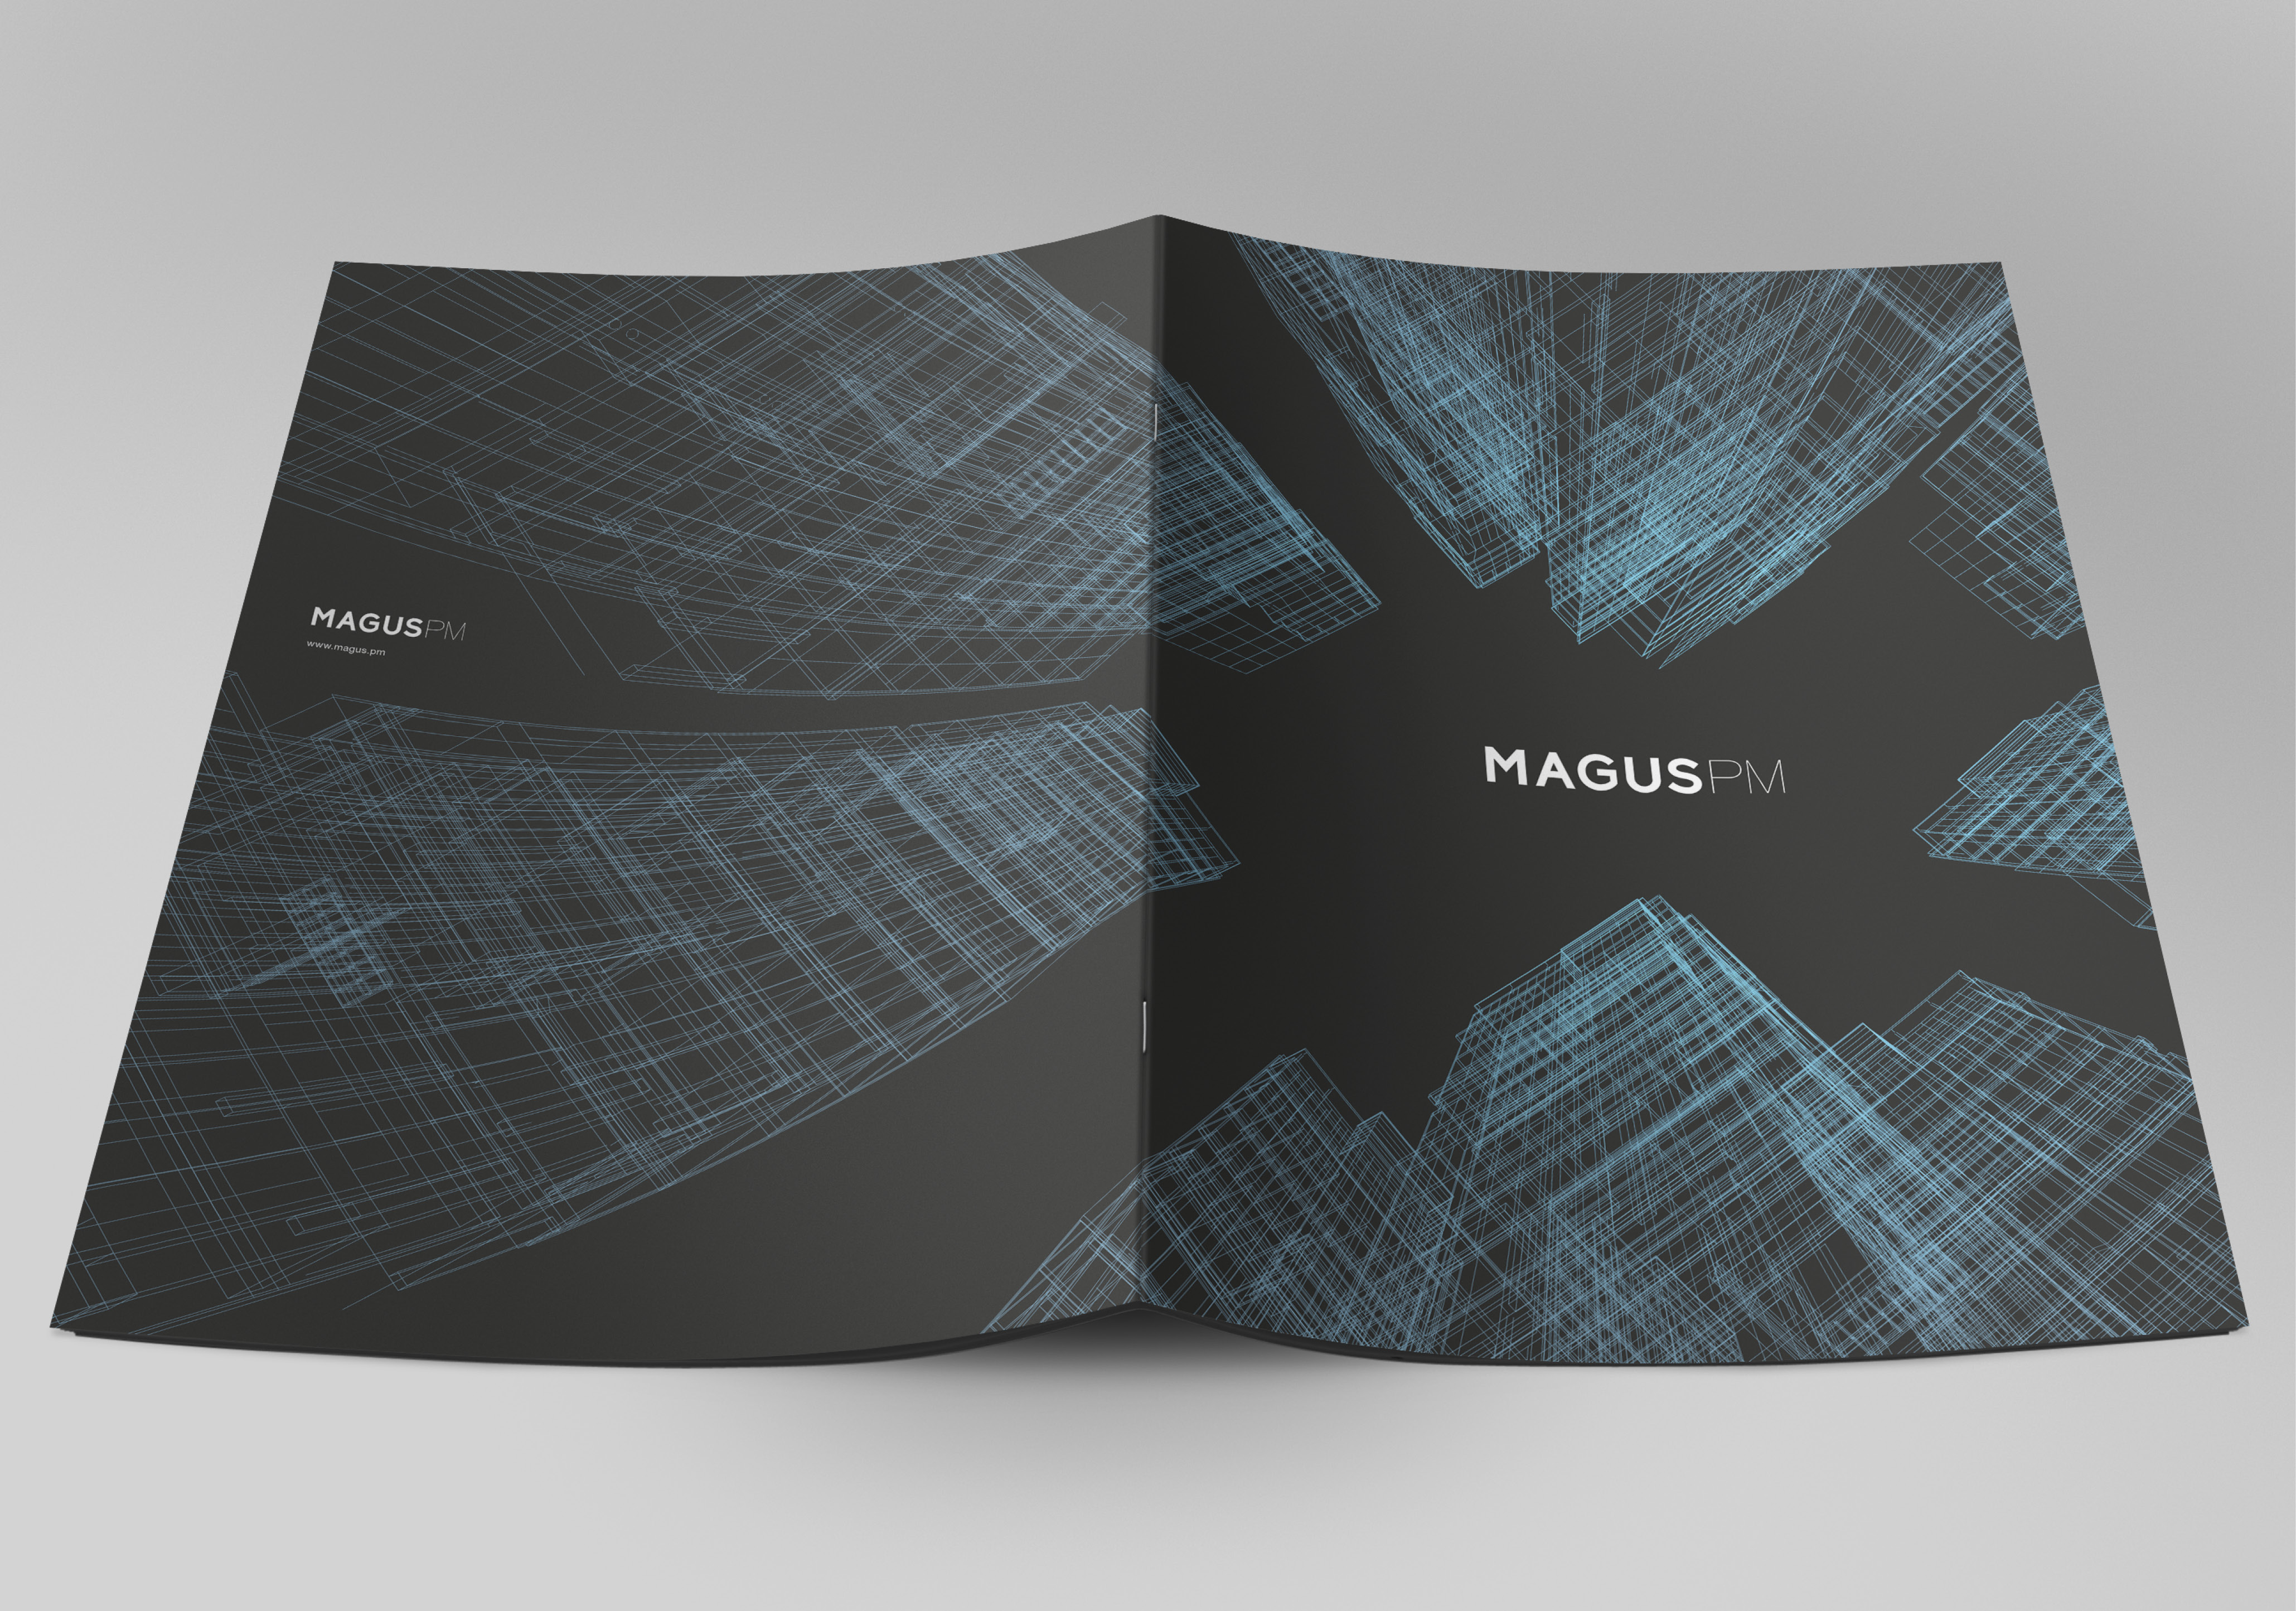 Magus PM Brochure cover